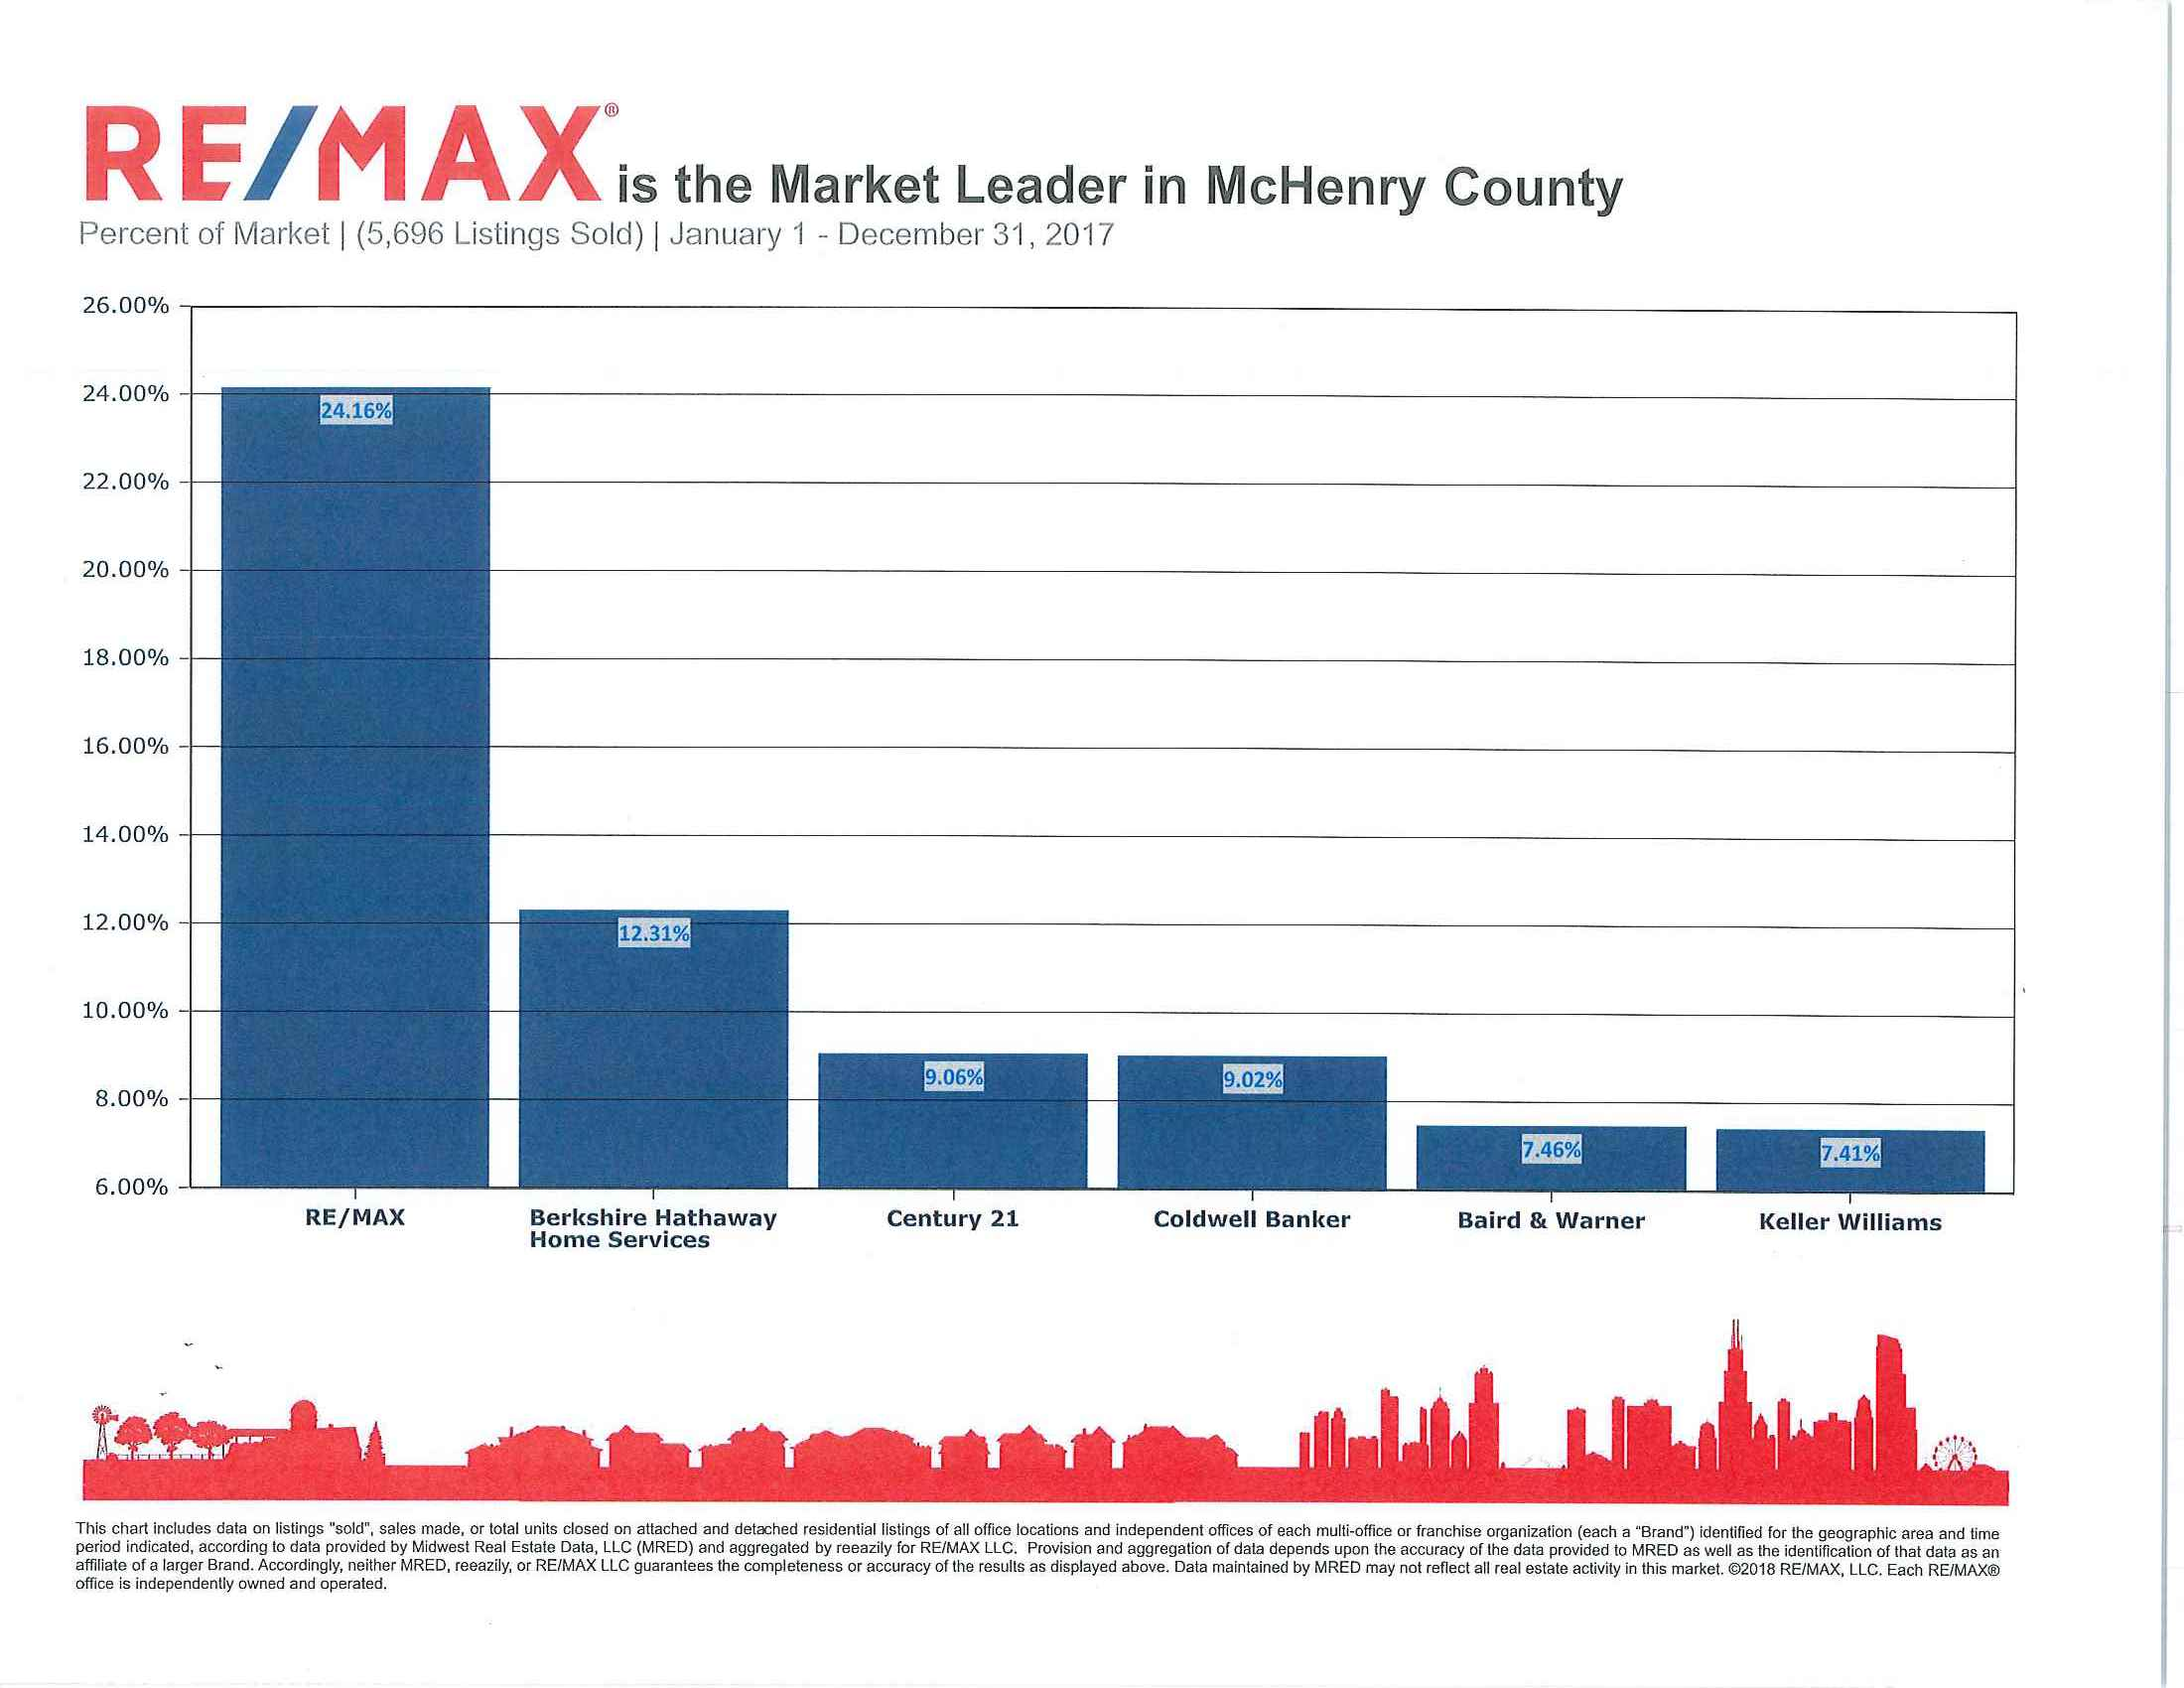 Leader in McHenry County